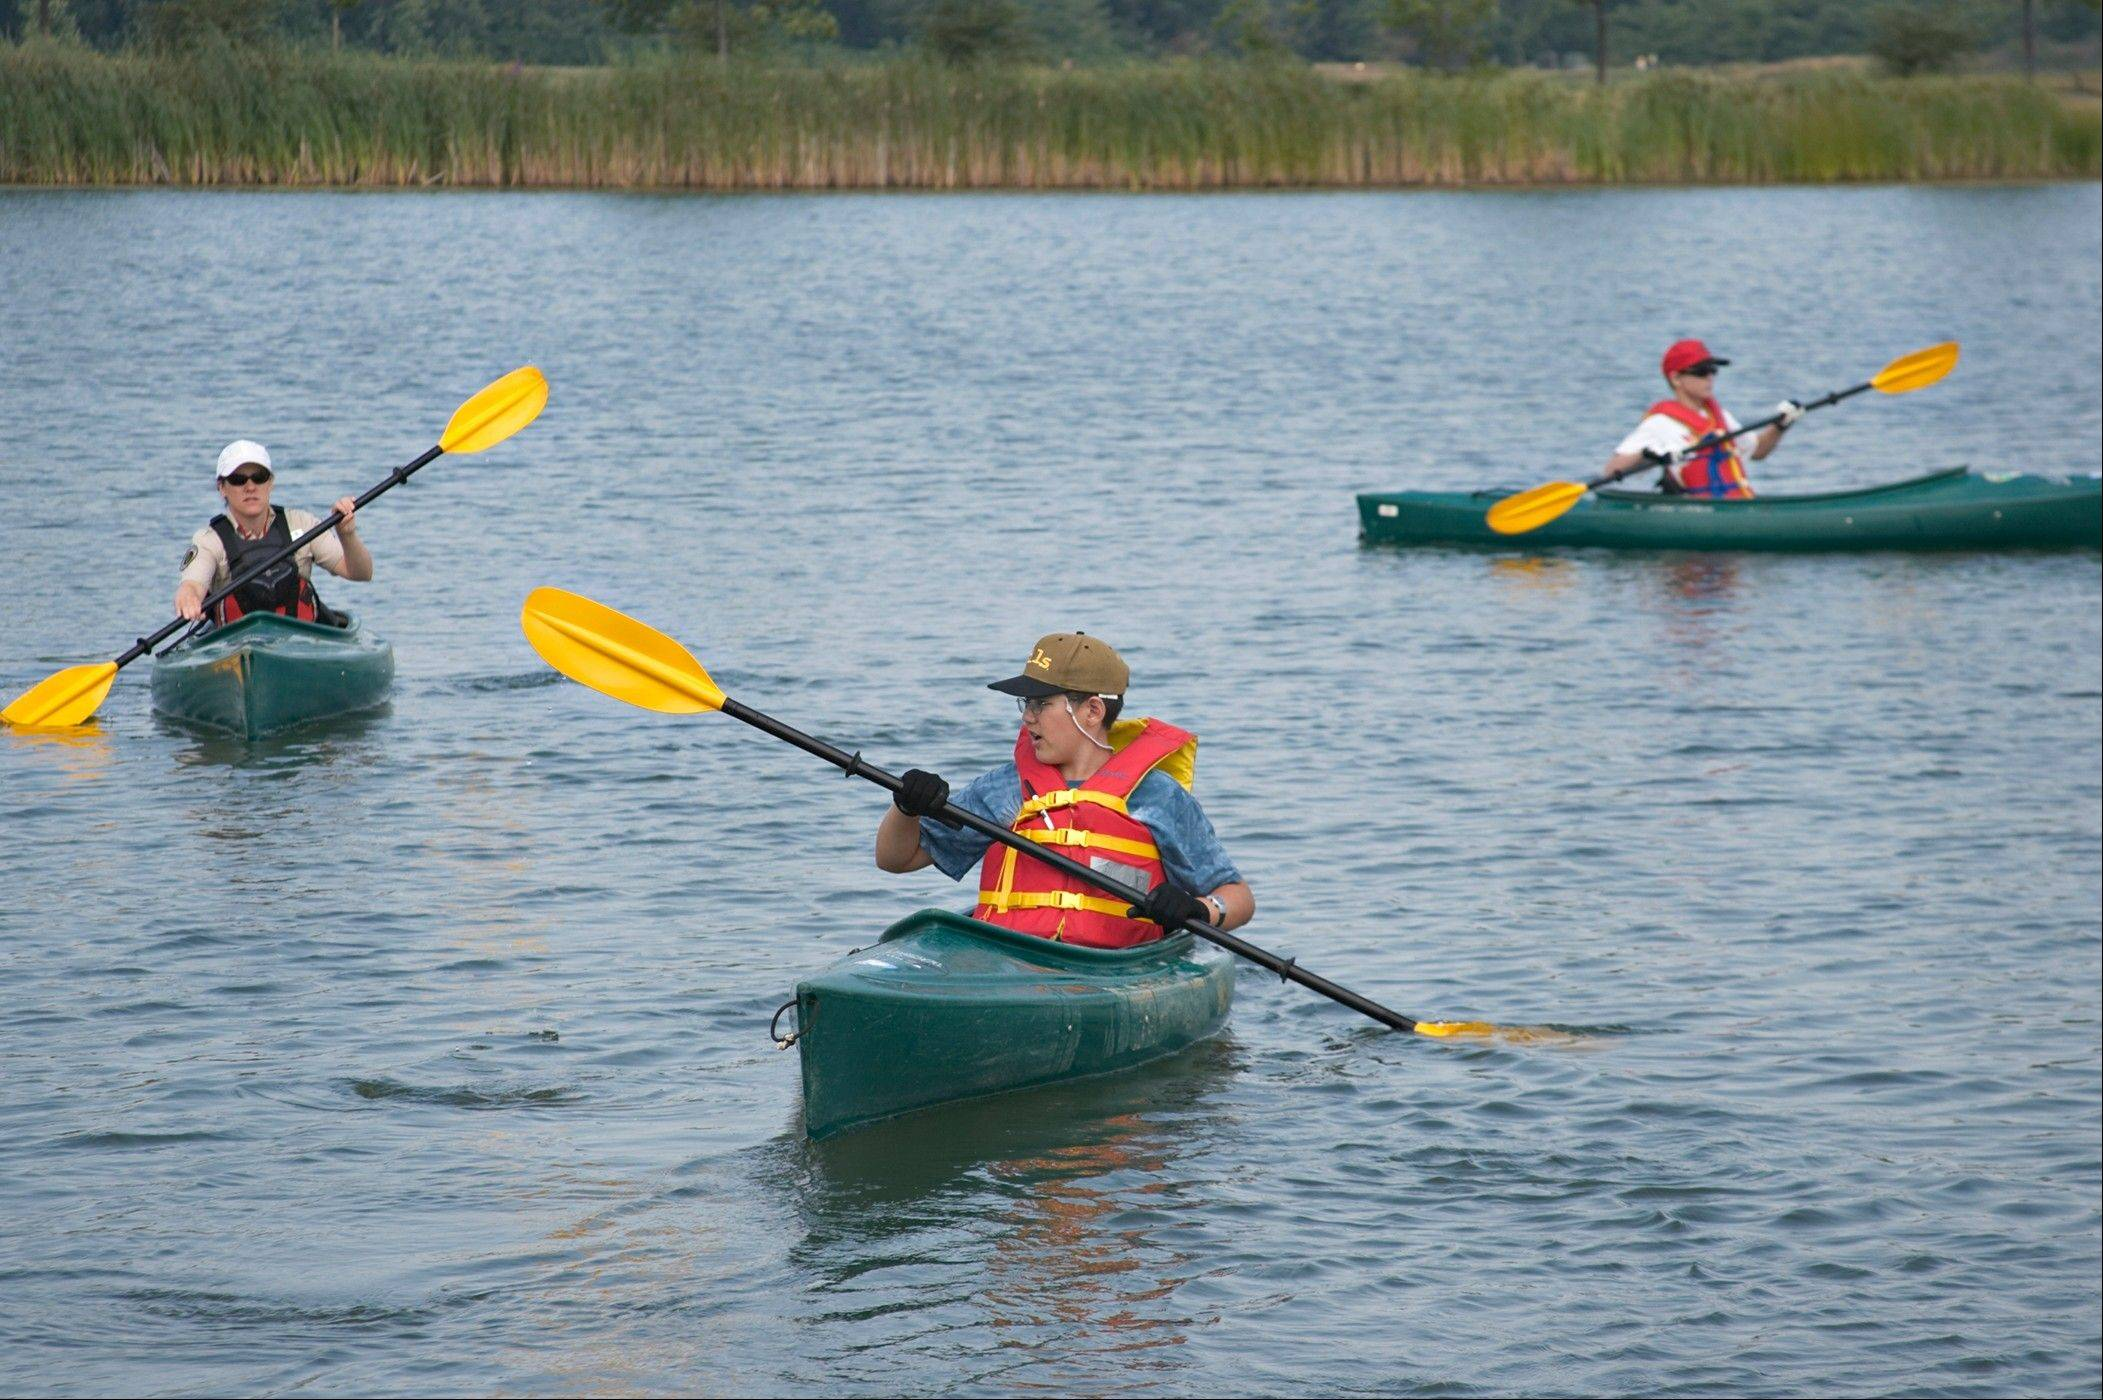 Students learn to kayak at Paddling Camp at Independence Grove through the Lake County Forest Preserve.